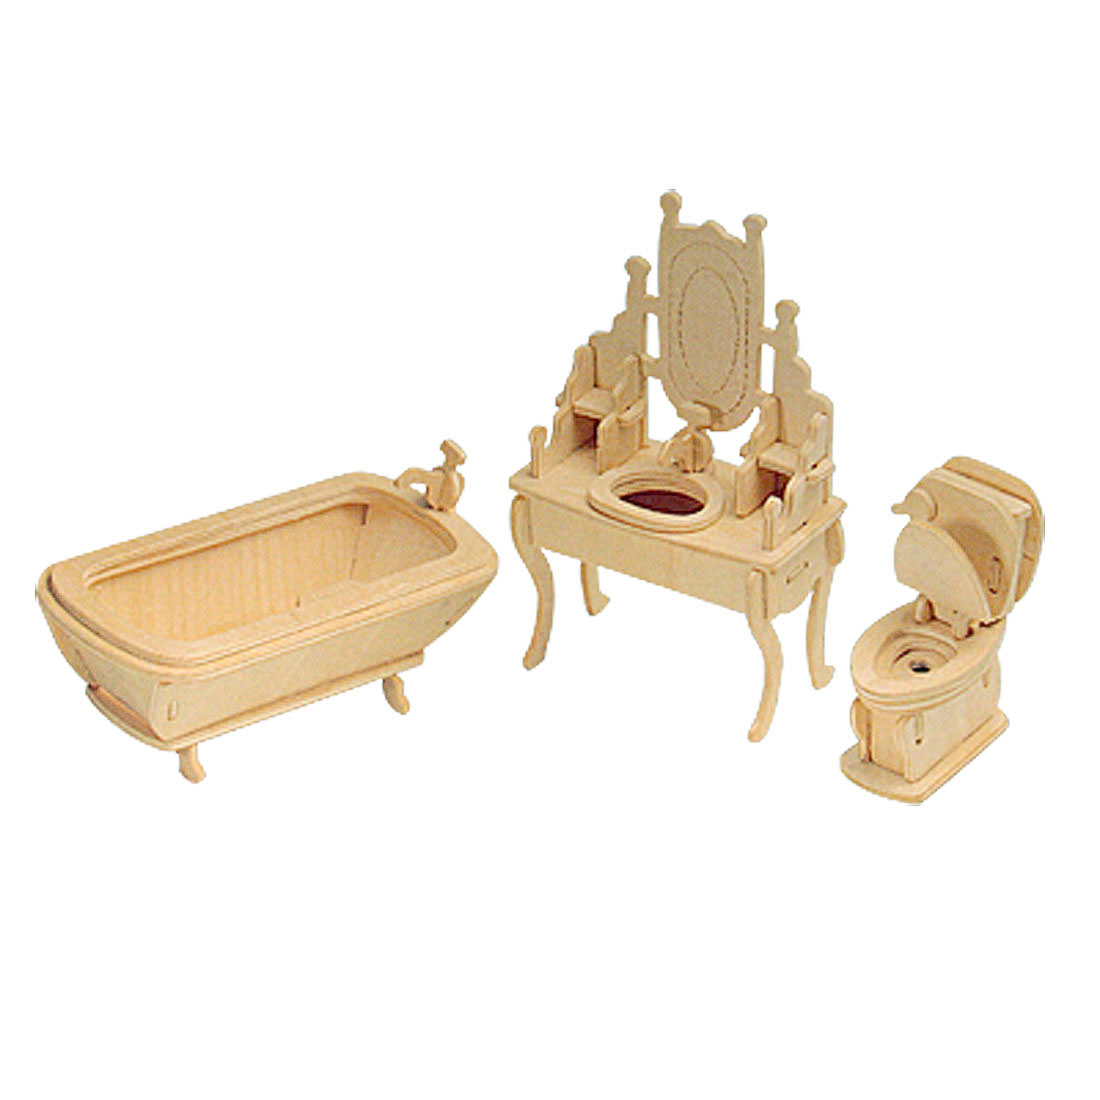 Toys - Wooden Puzzle Toy Models Bathroom